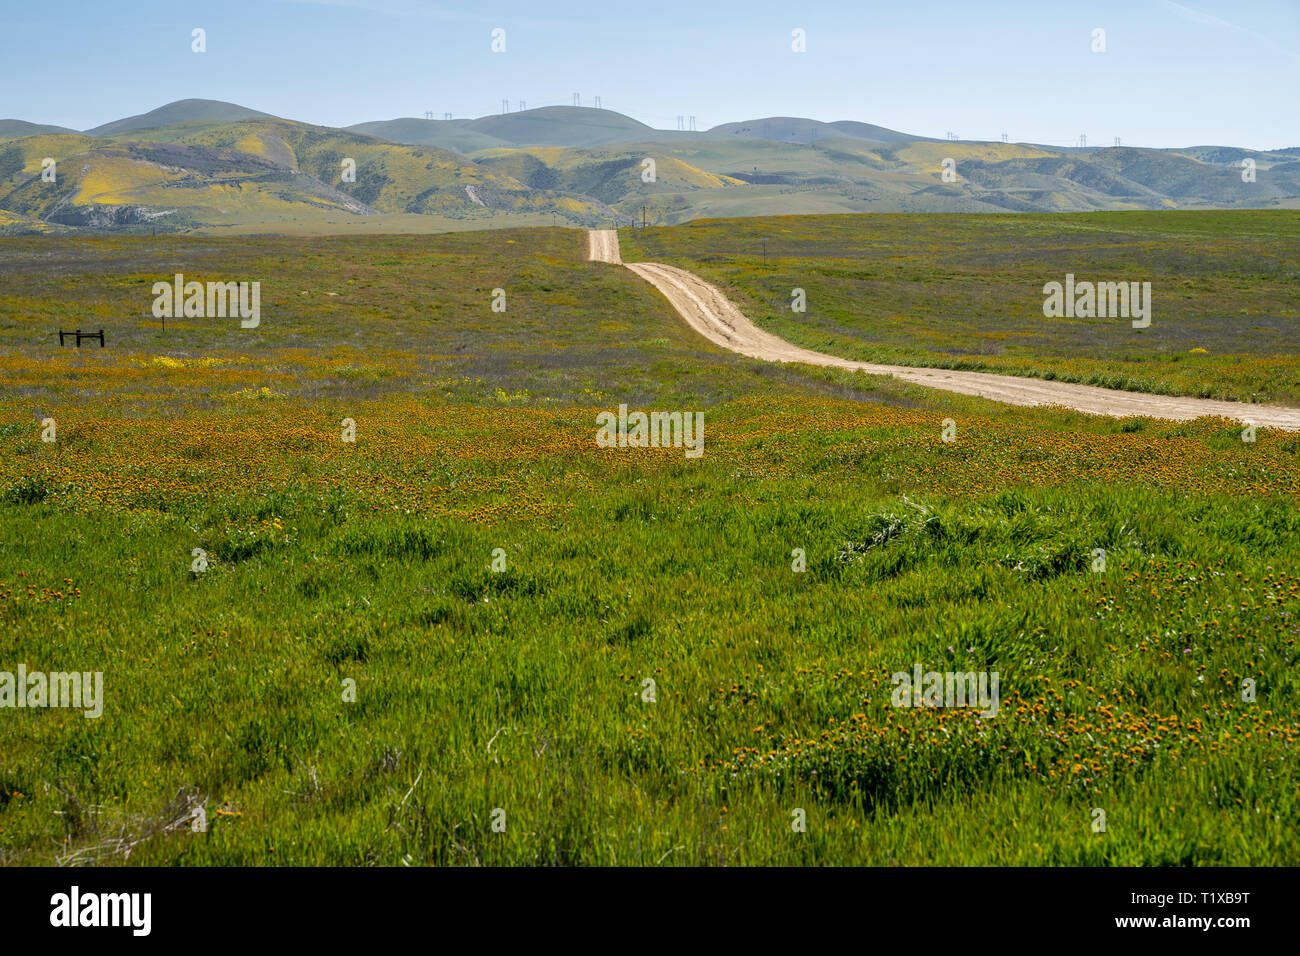 Seven Mile Road in Carrizo Plain National Monument, during the California superbloom in spring 2019 - Stock Image